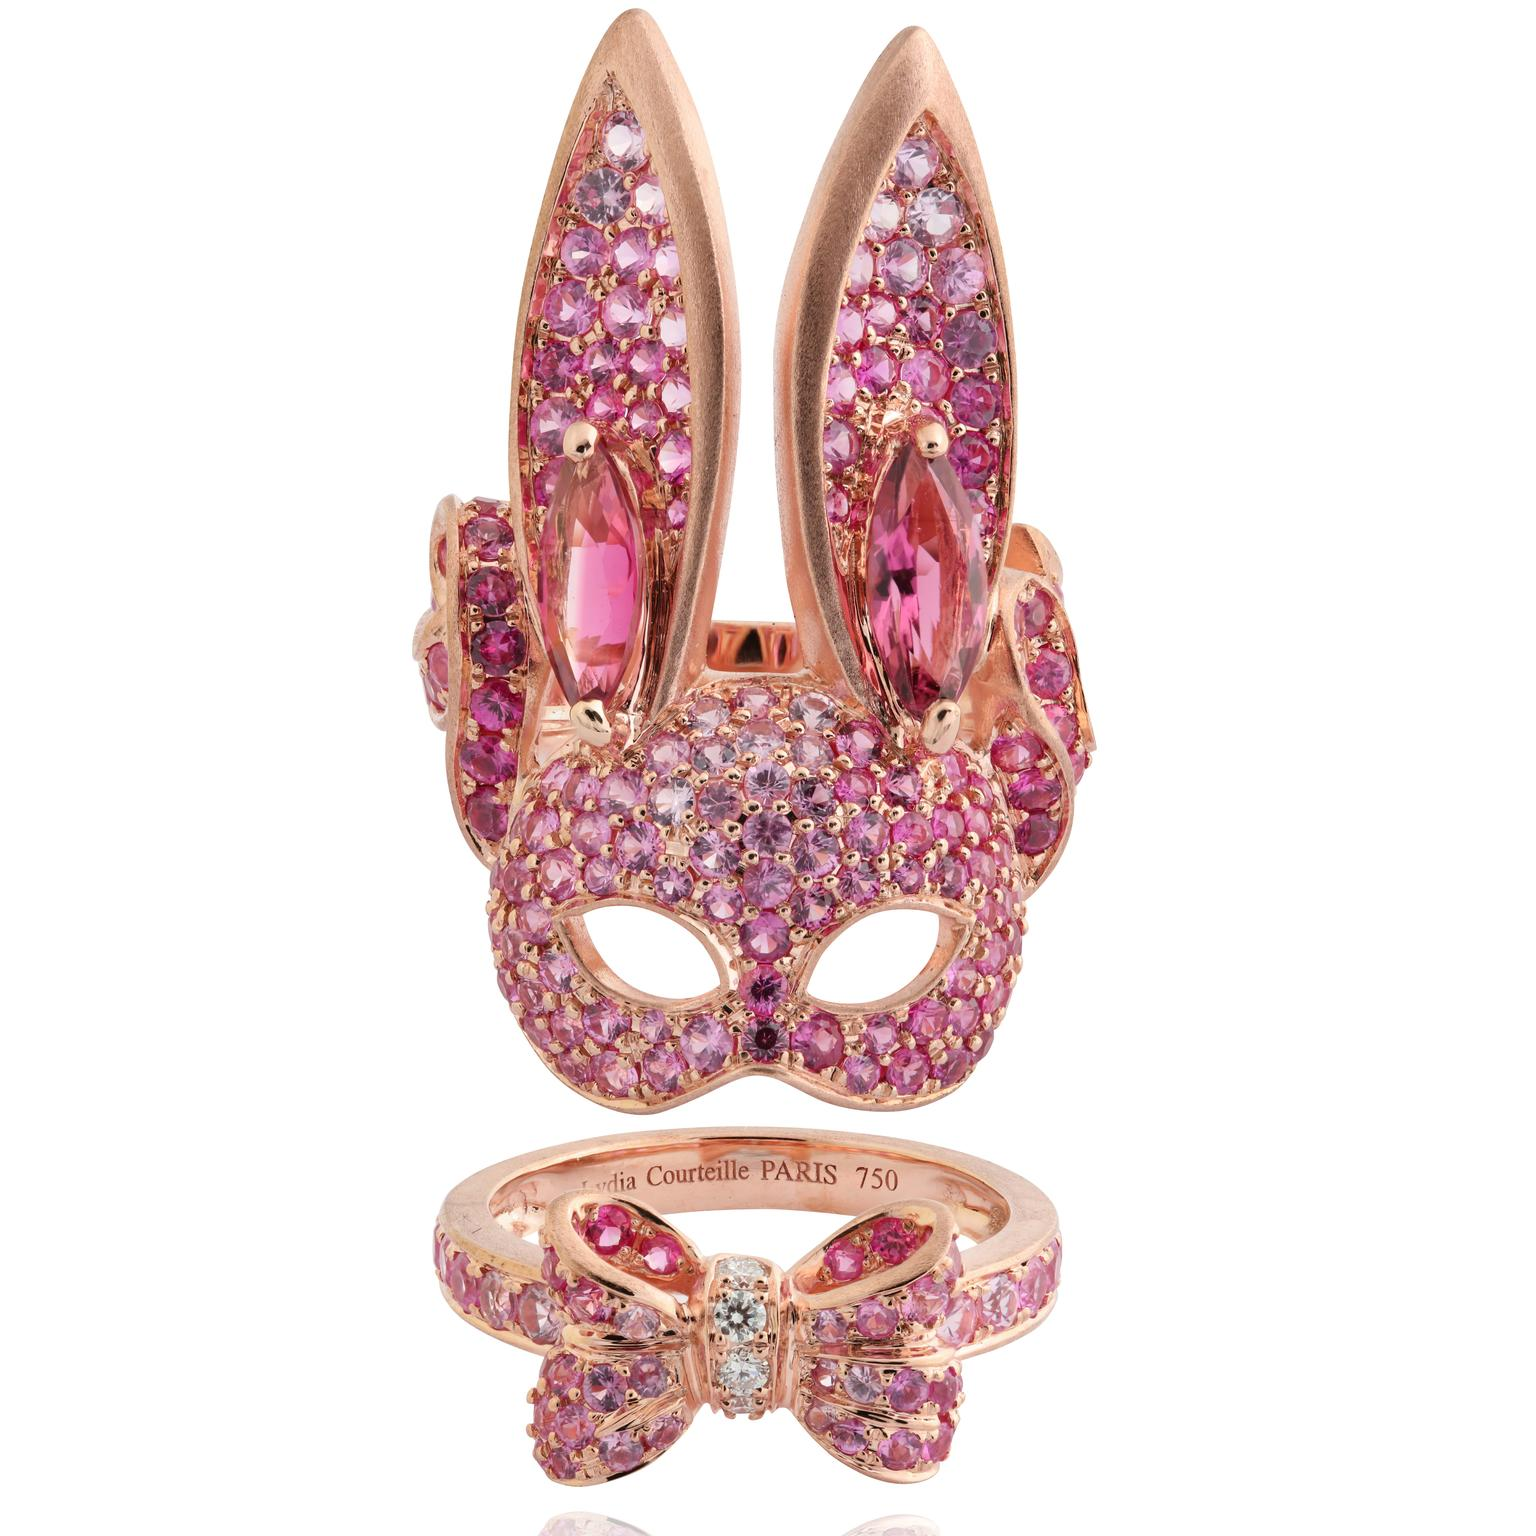 Lydia Courteille La Vie en Rose double bunny rabbit ring copy